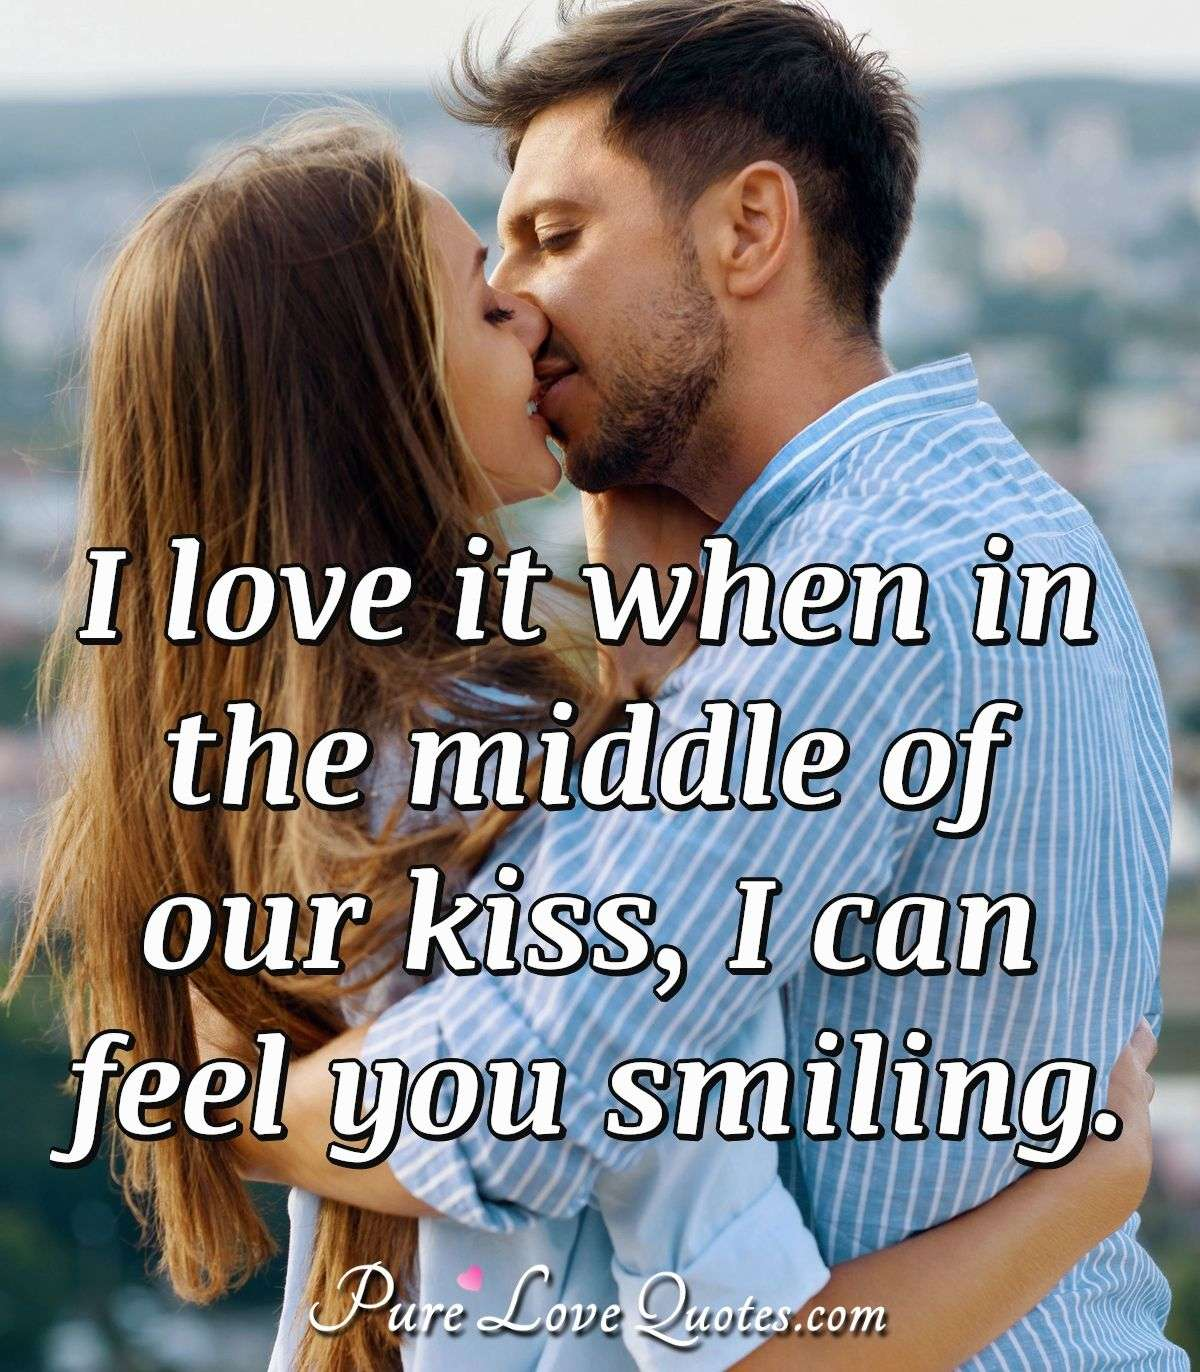 I love it when in the middle of our kiss, I can feel you smiling. - Anonymous